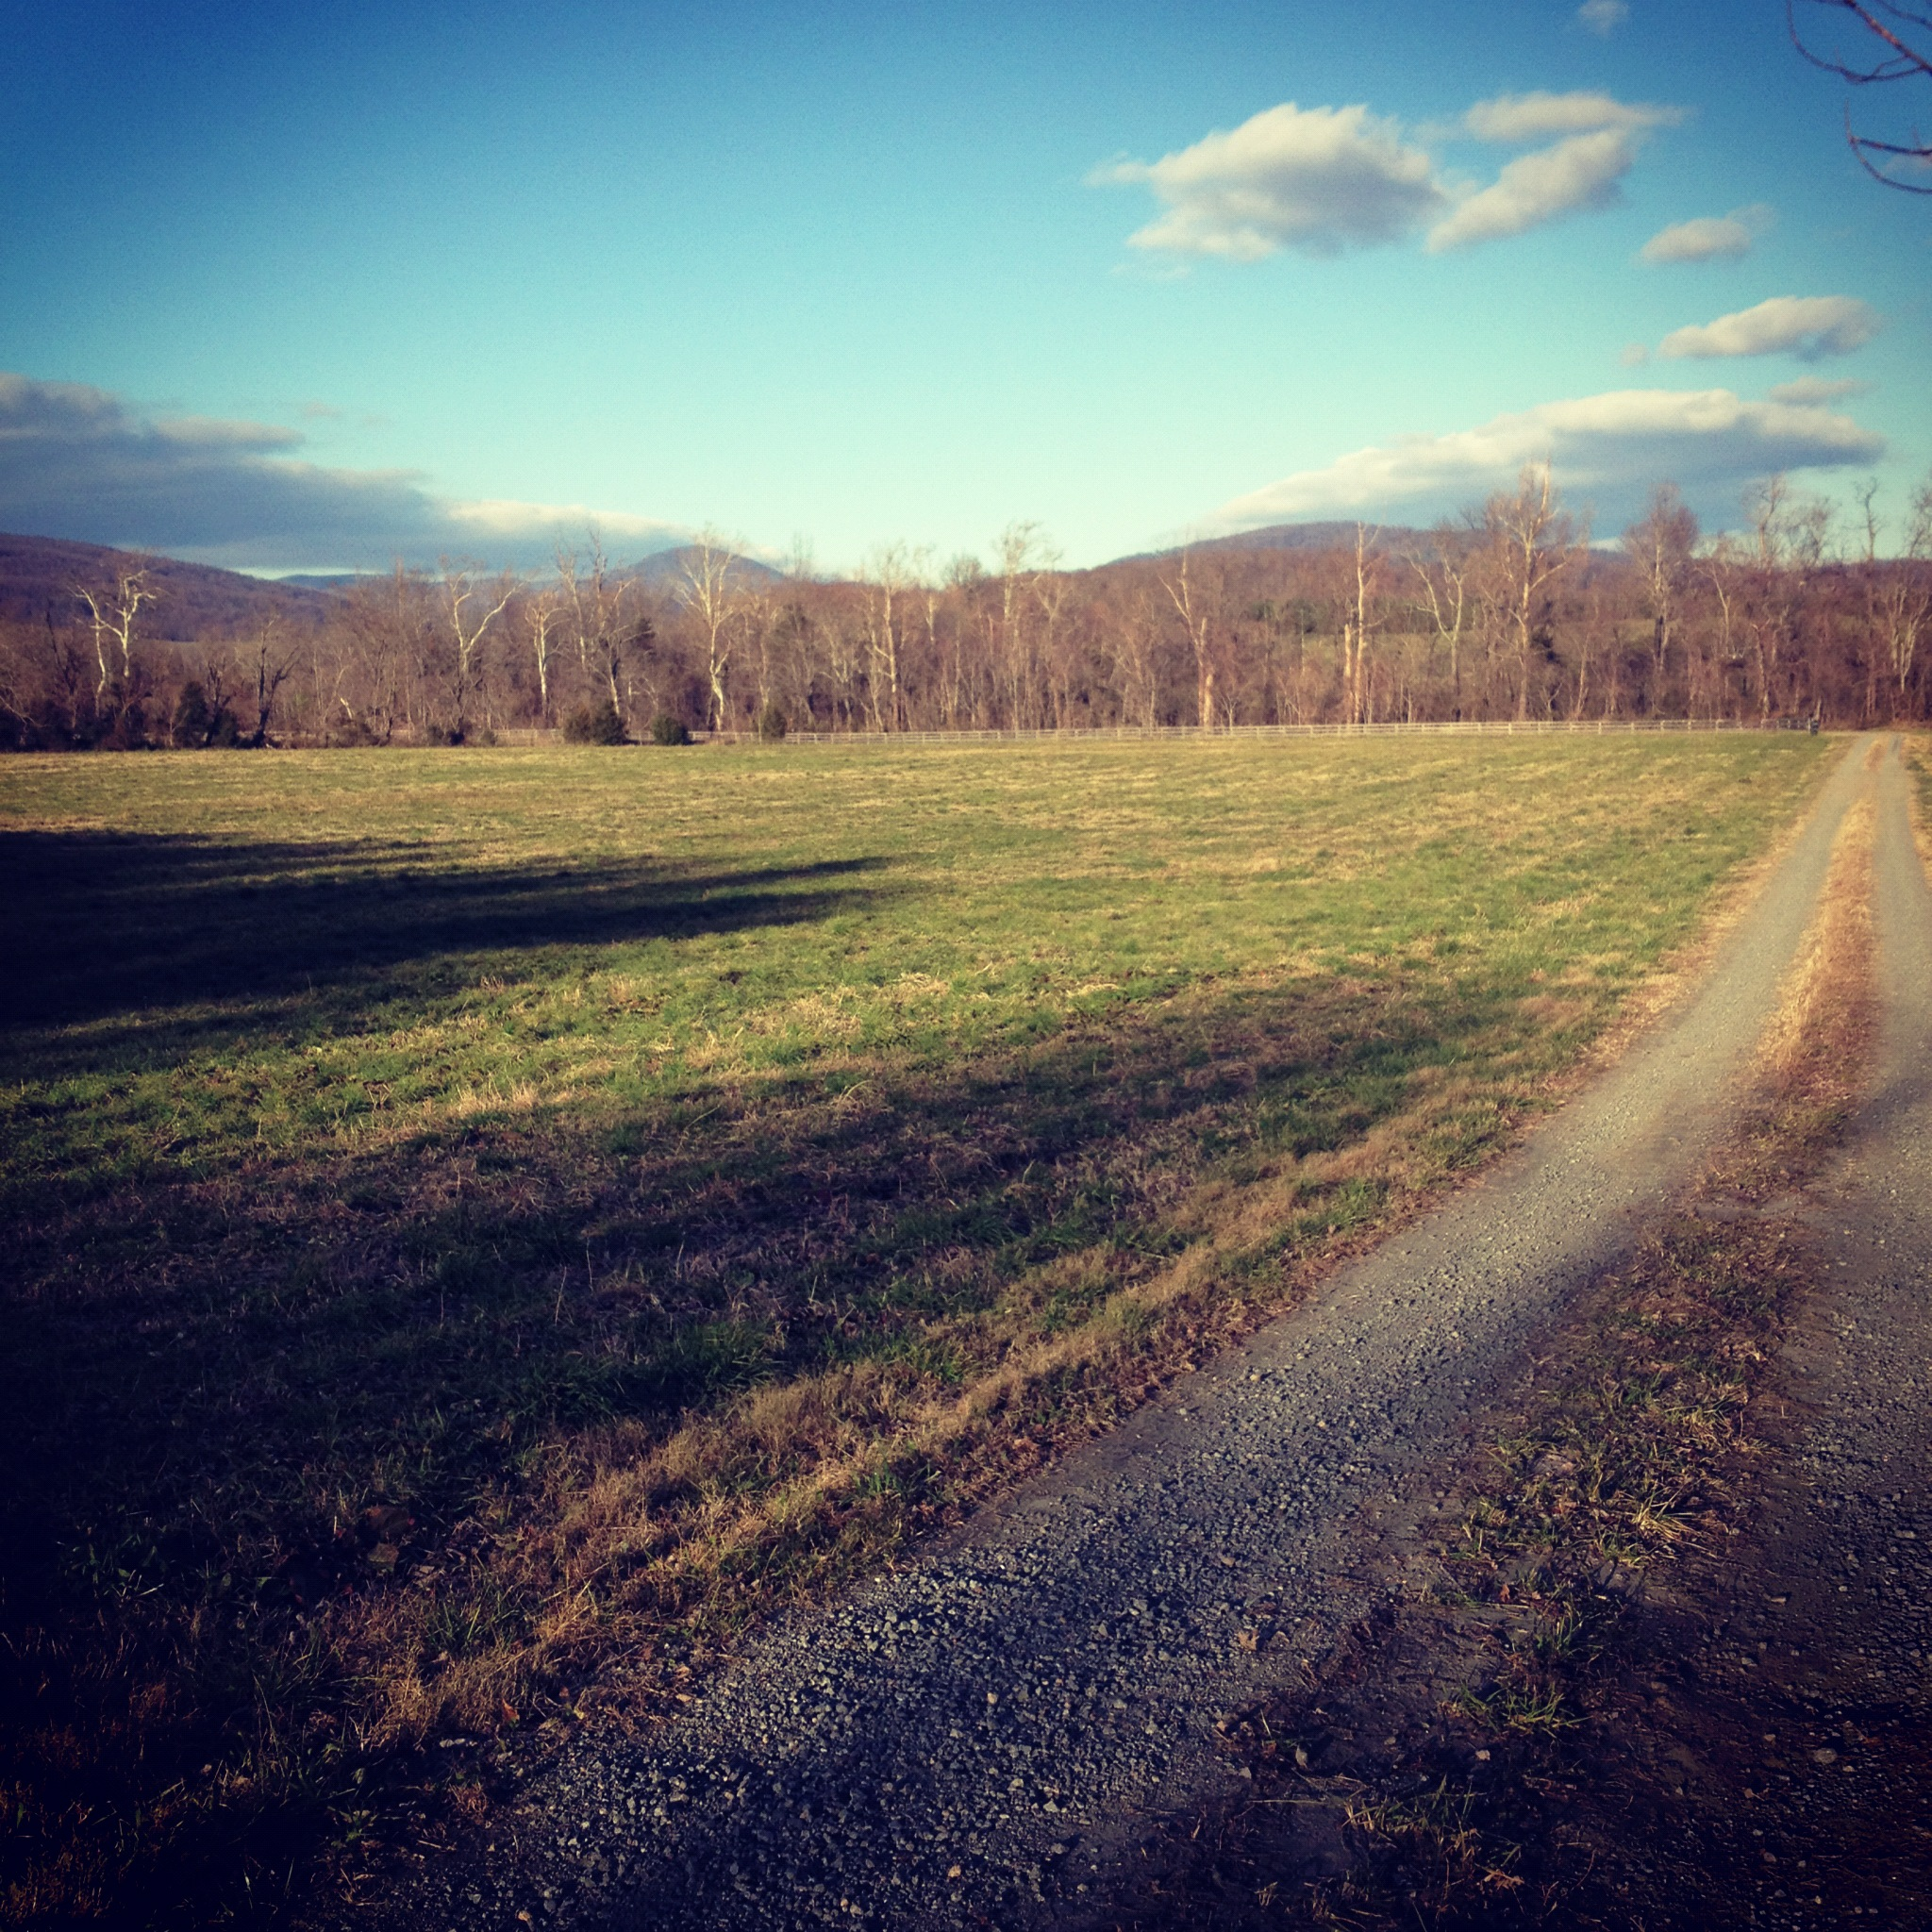 Views from the farm in Virginia!